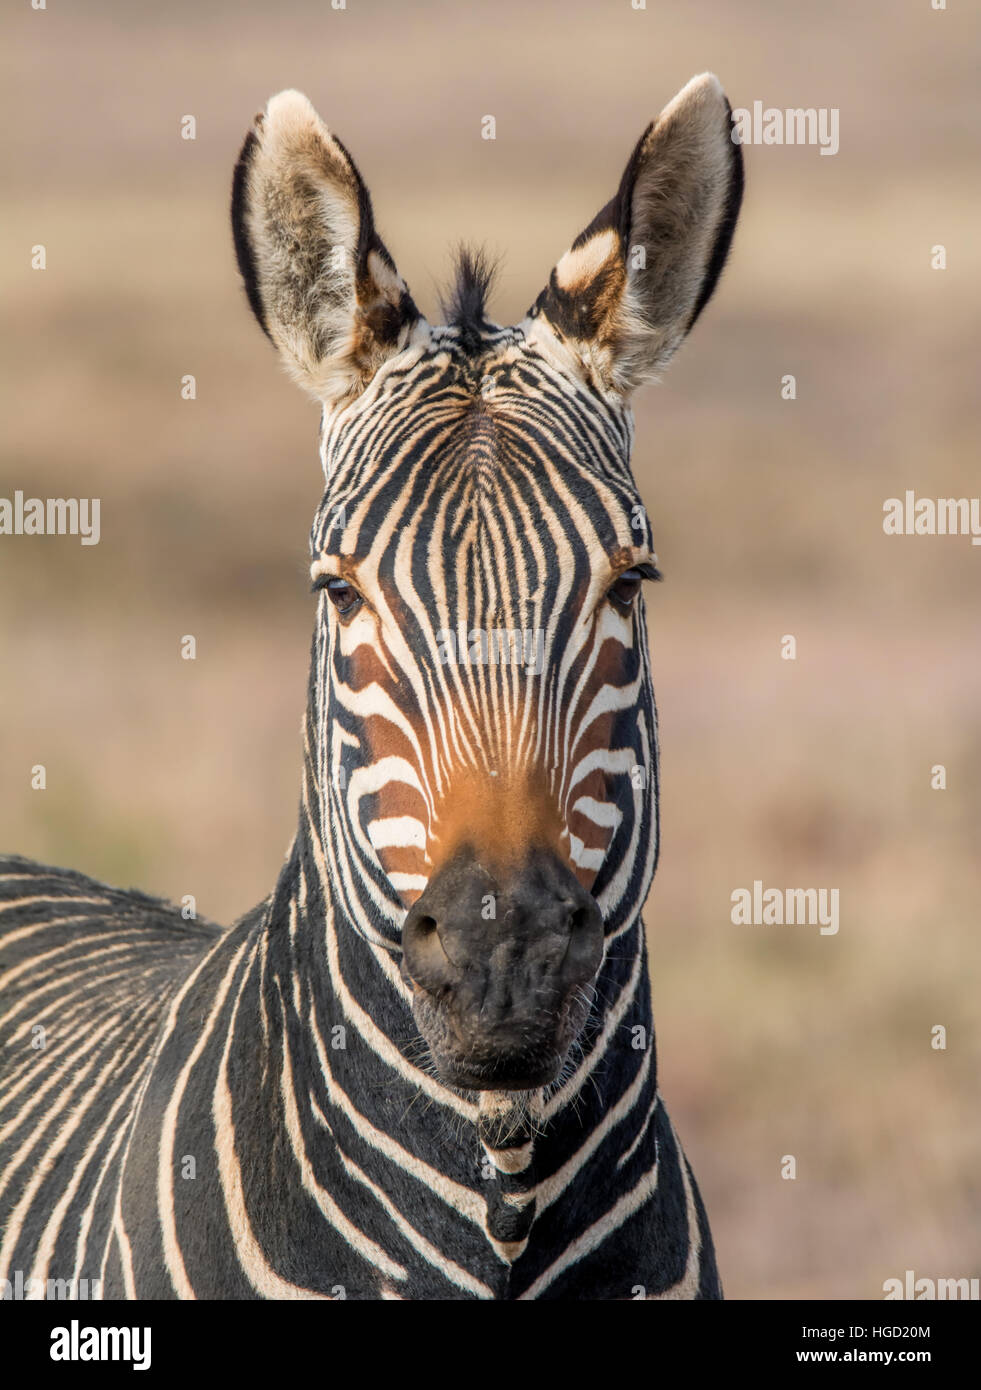 Portrait of a Cape Mountain Zebra in Southern African savannah Stock Photo